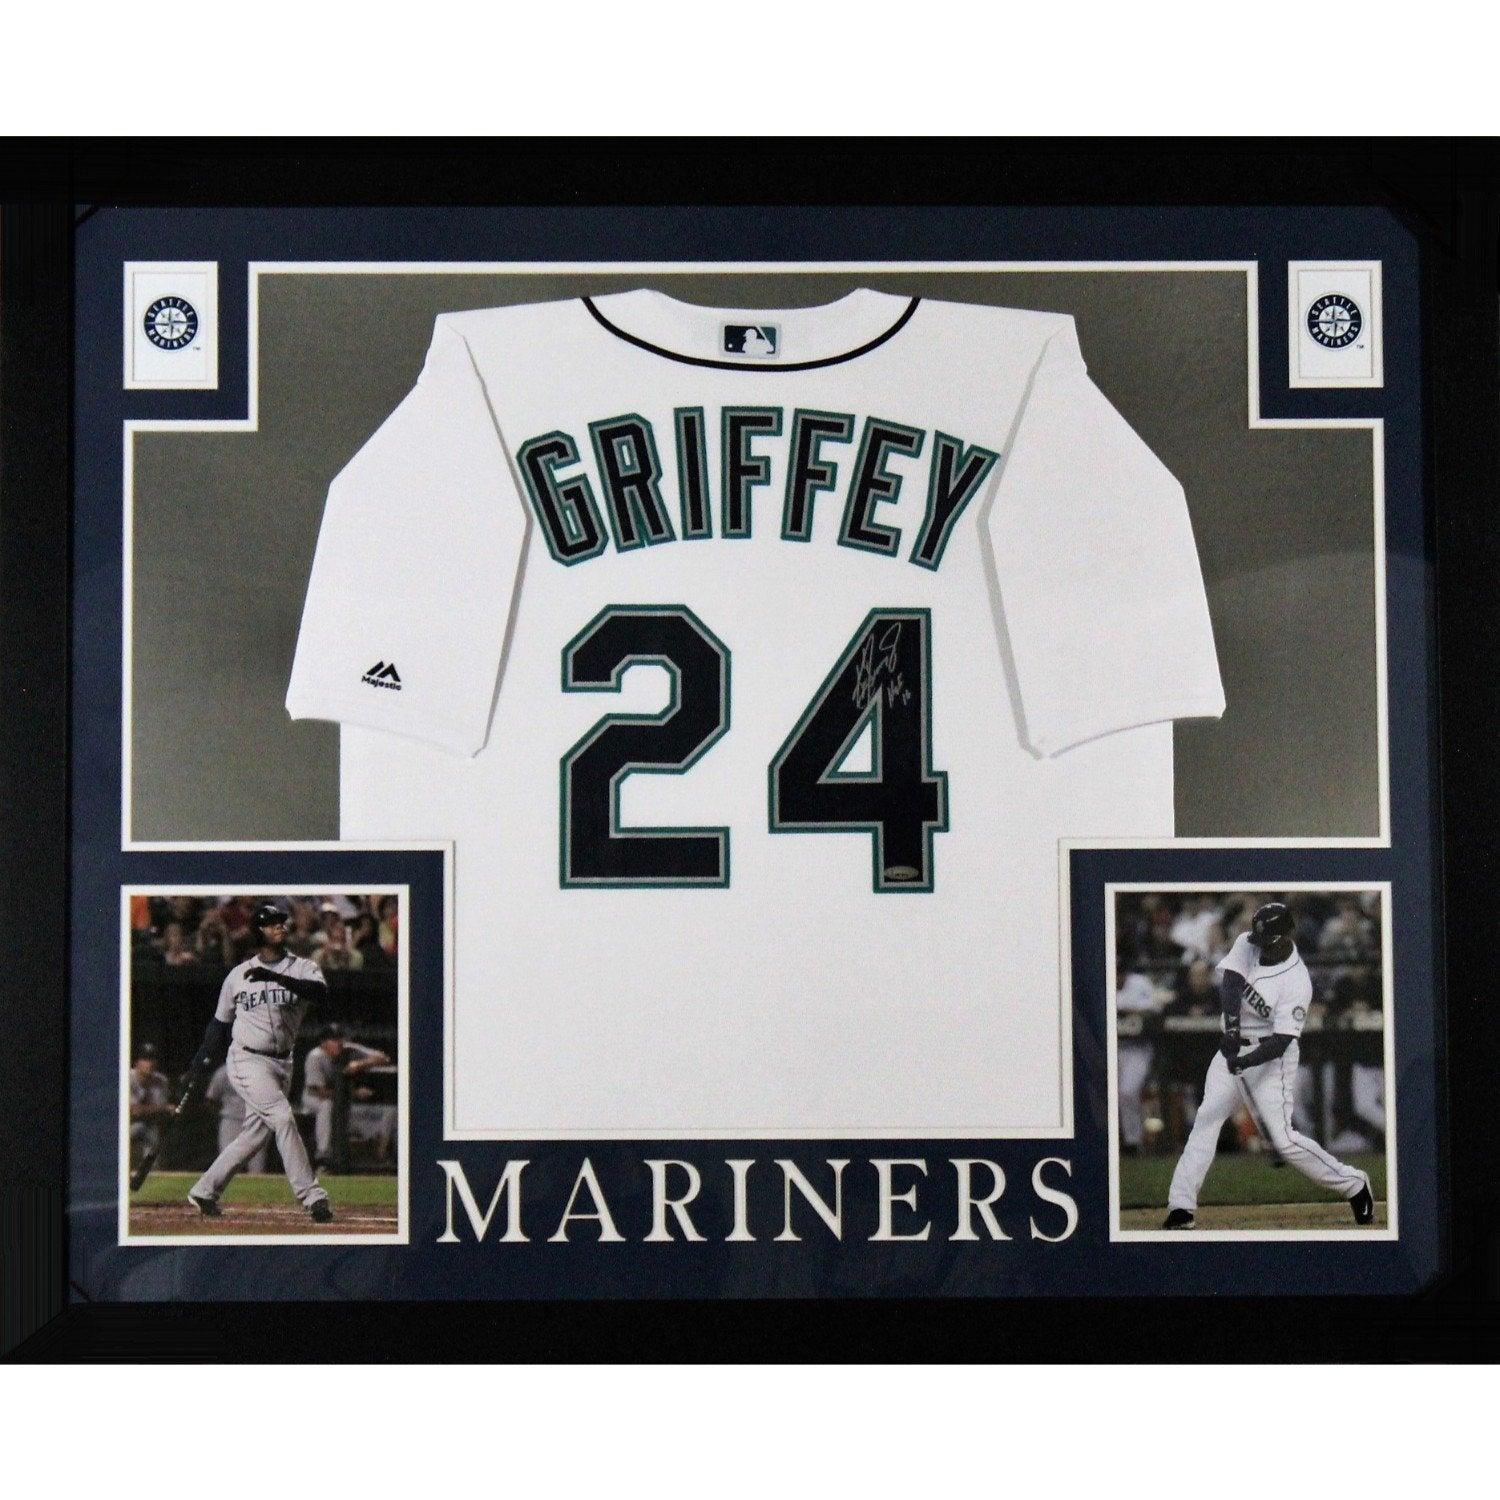 Framed Jersey (7-10 day turnaround)-Powers Sports Memorabilia